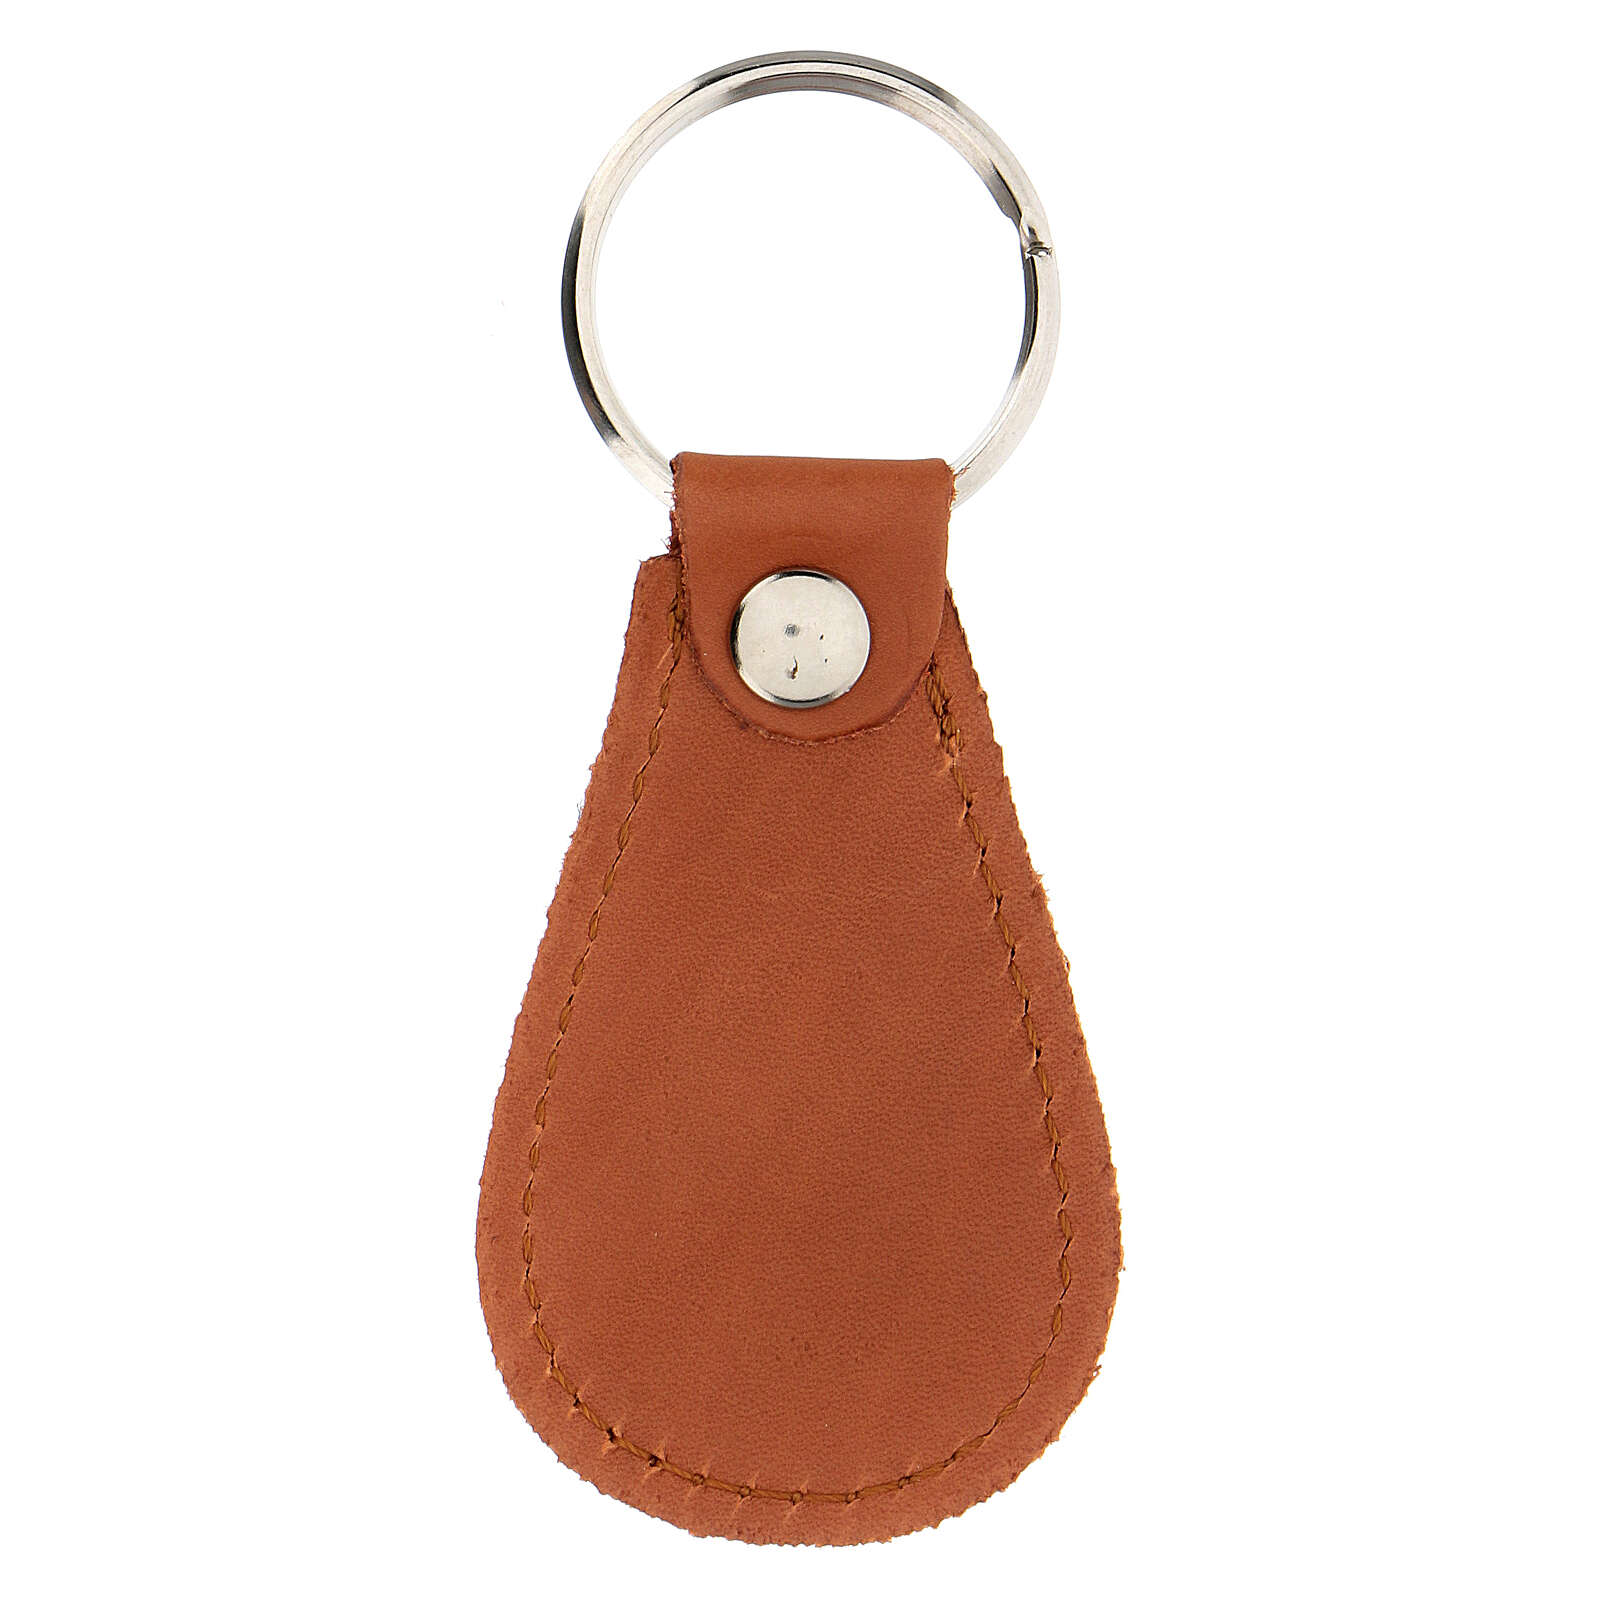 Keychain Merciful Jesus real leather 9 cm 3